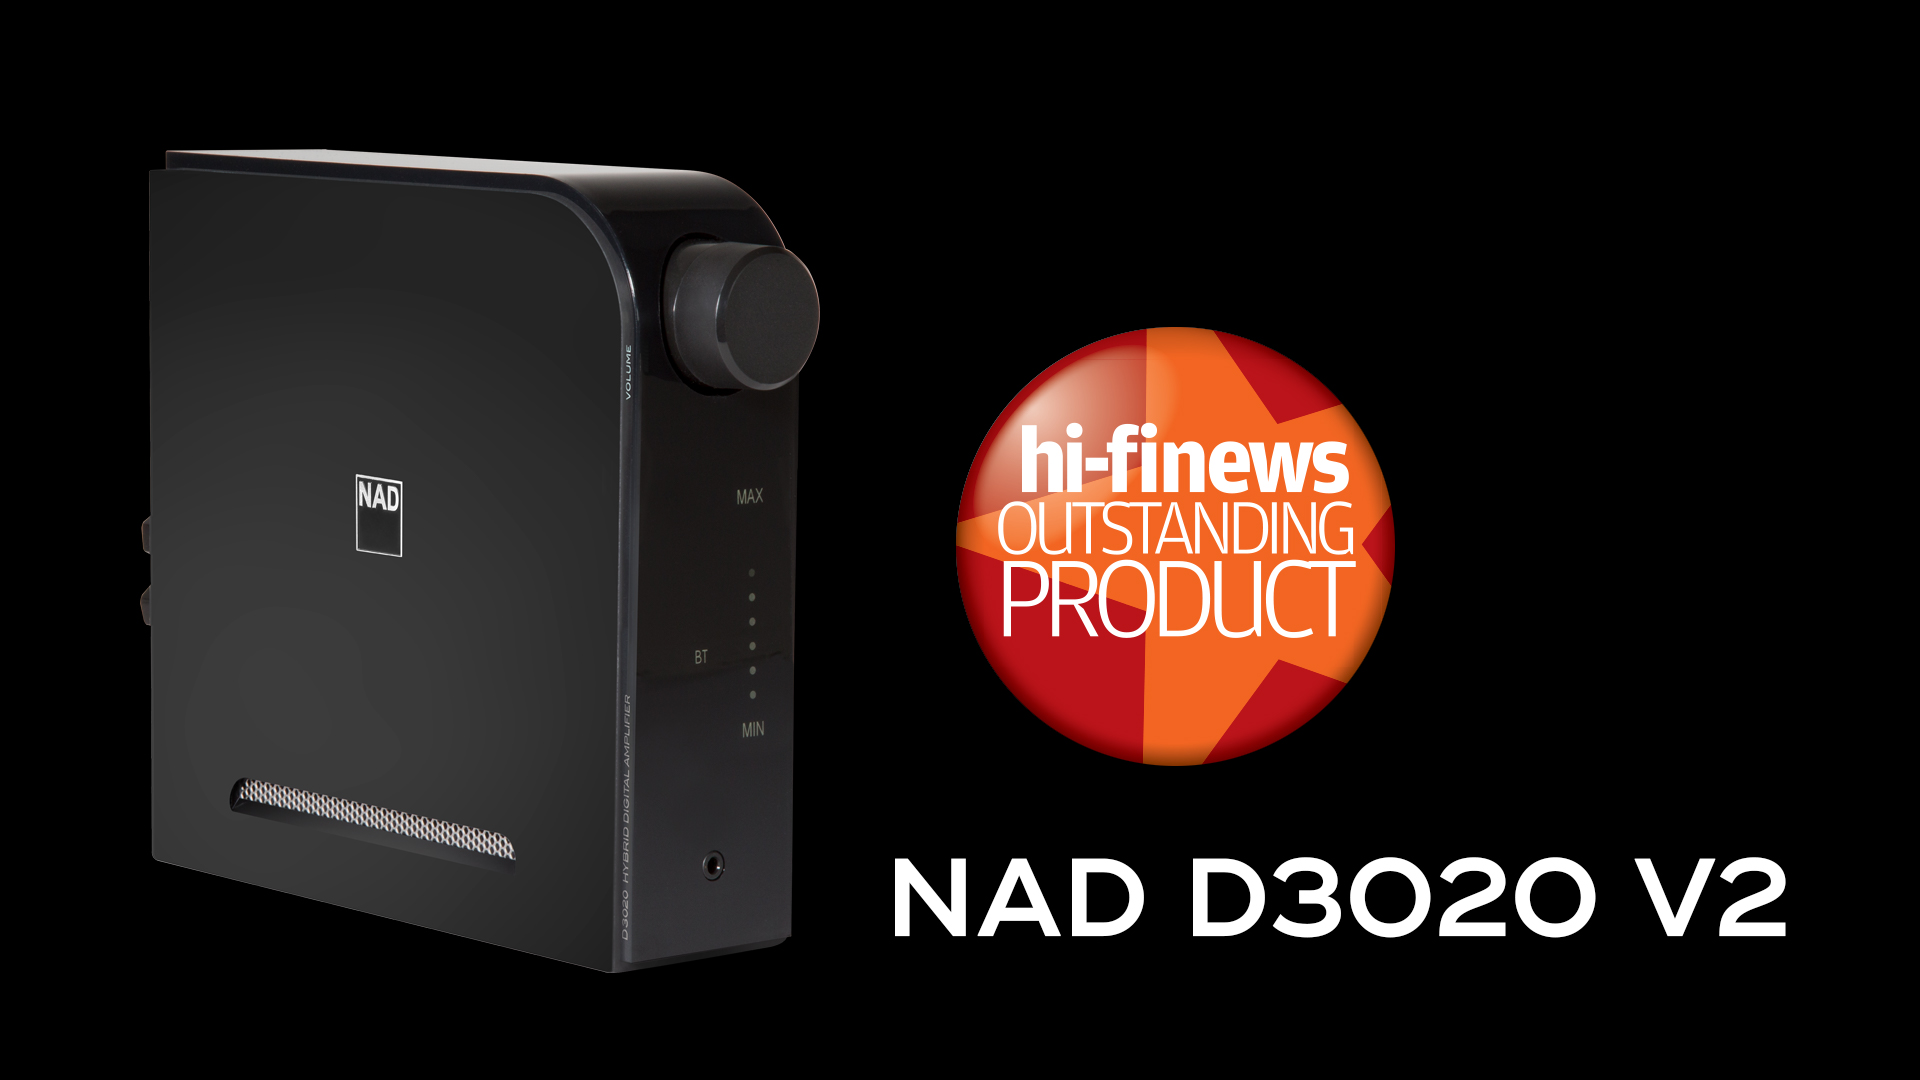 NAD D 3020 V2 HiFi News Outstanding Product Award